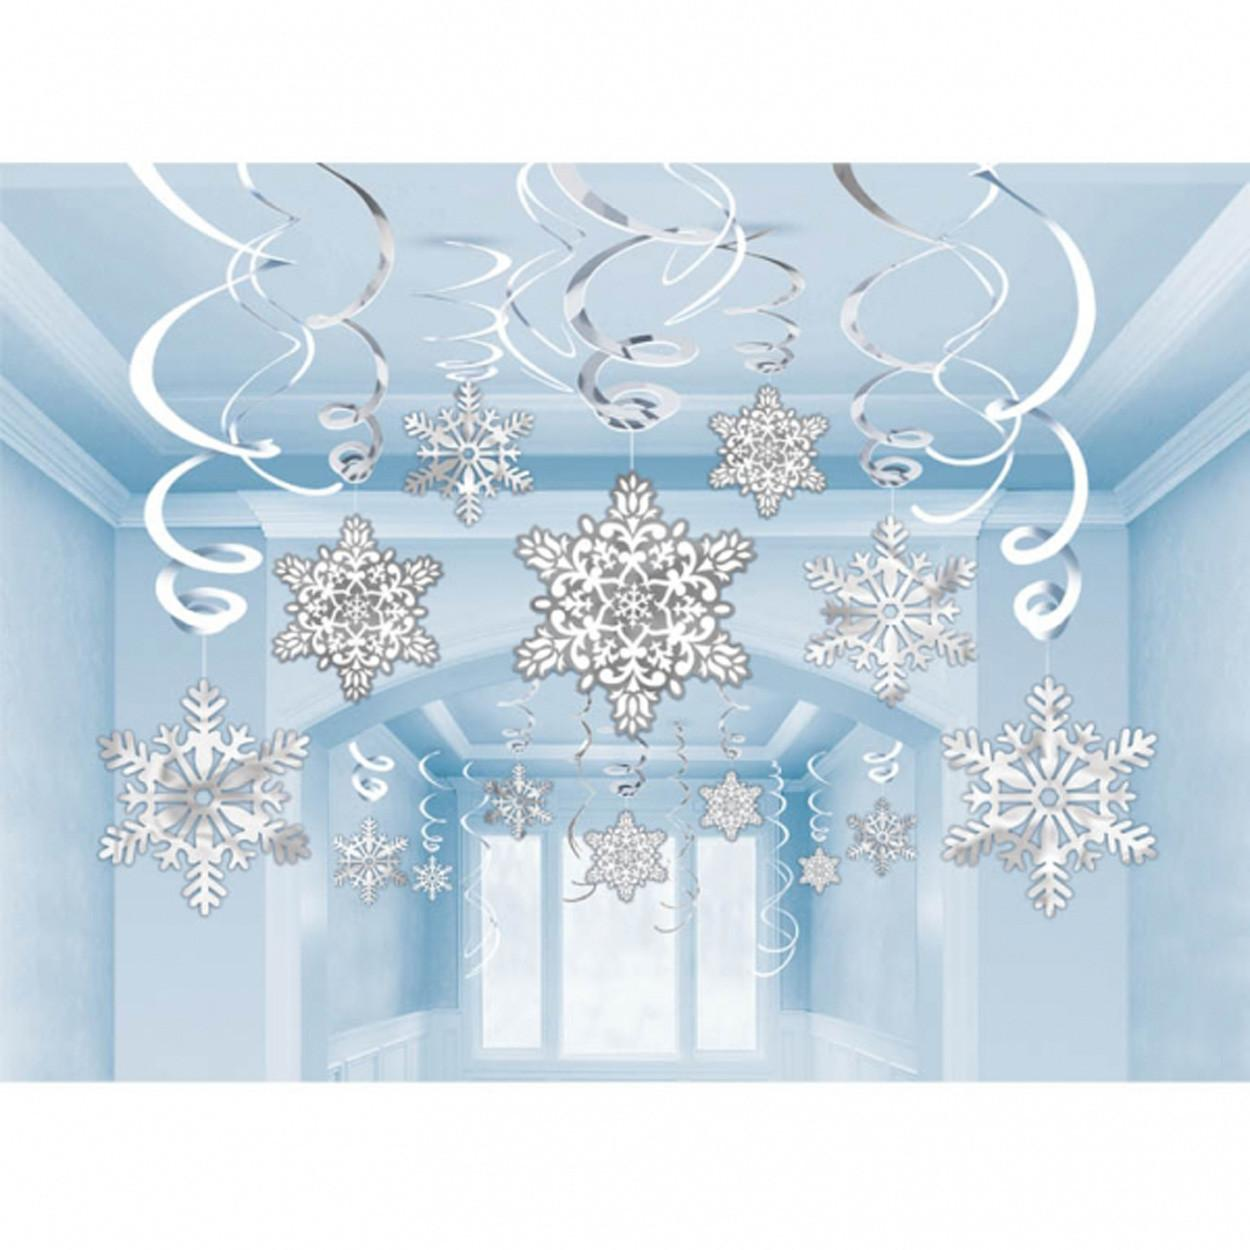 Hanging Christmas Snowflake Foil Swirl Party